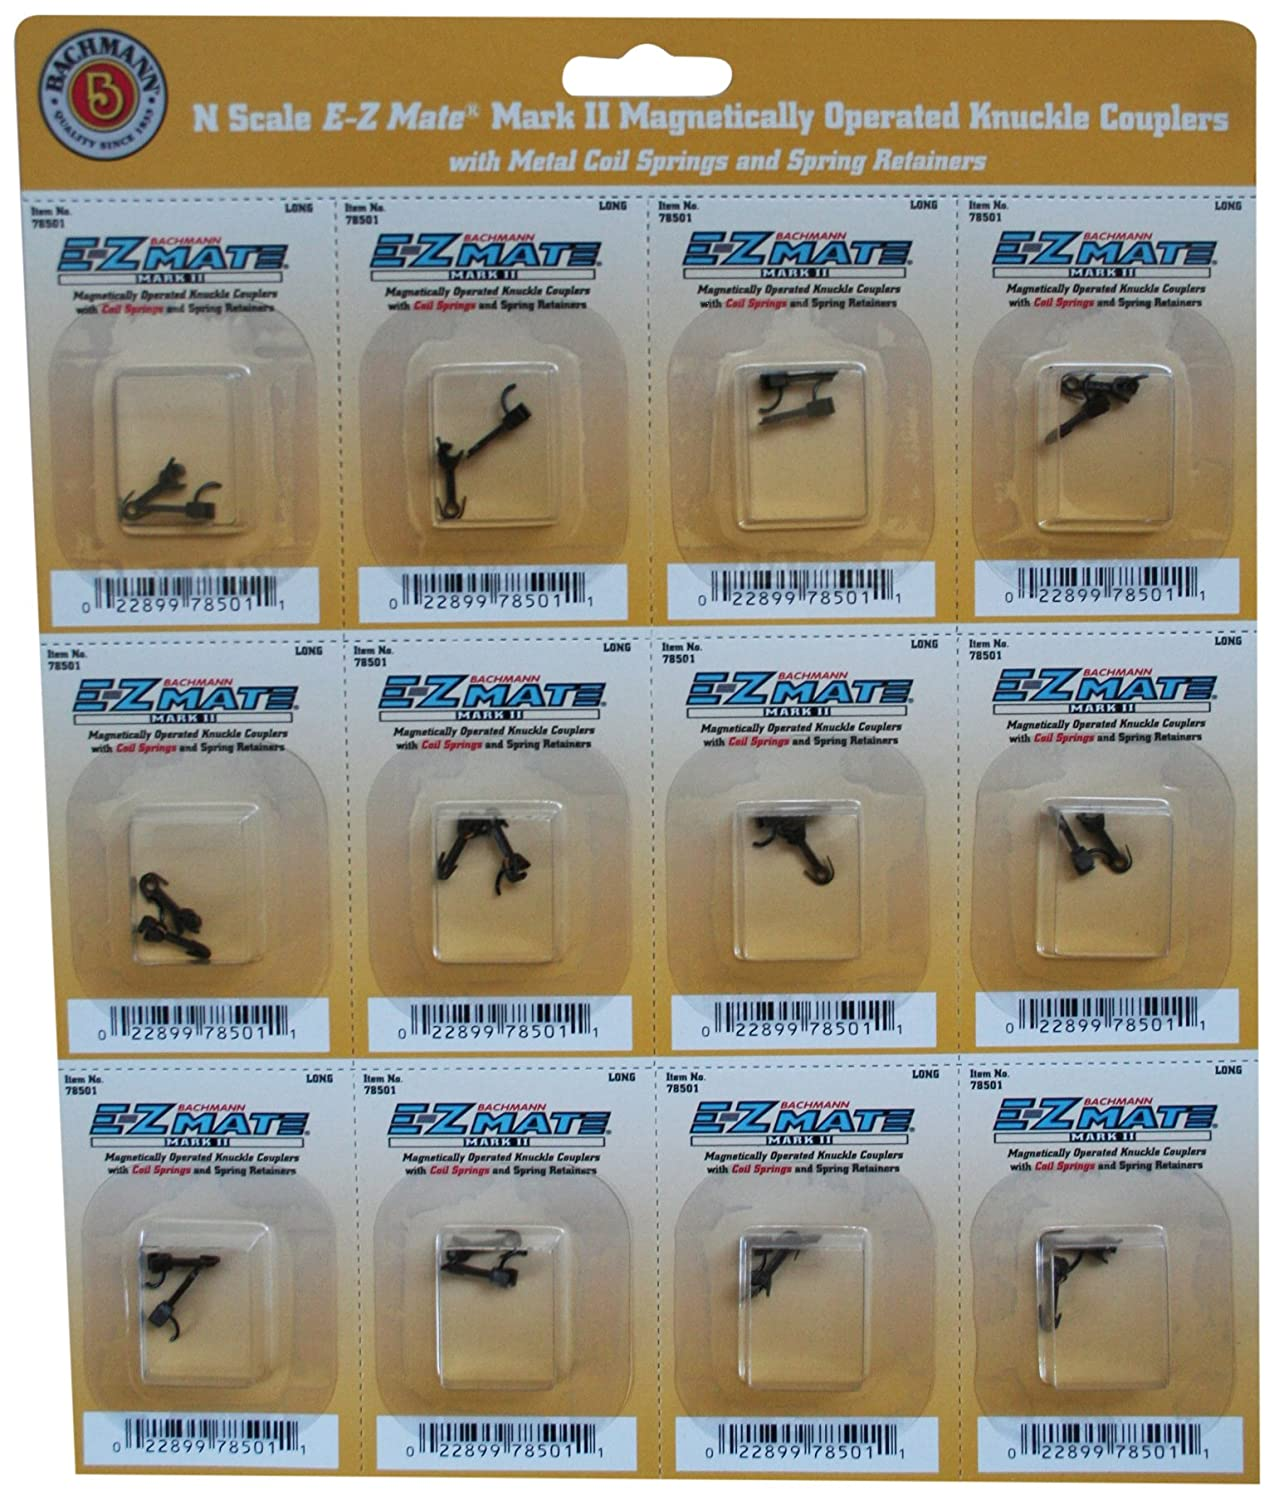 Z Mate Mark II Magnetic Knuckle Couplers with Metal Coil Spring Short - N Scale 12 Coupler pairs per card Bachmann Trains E